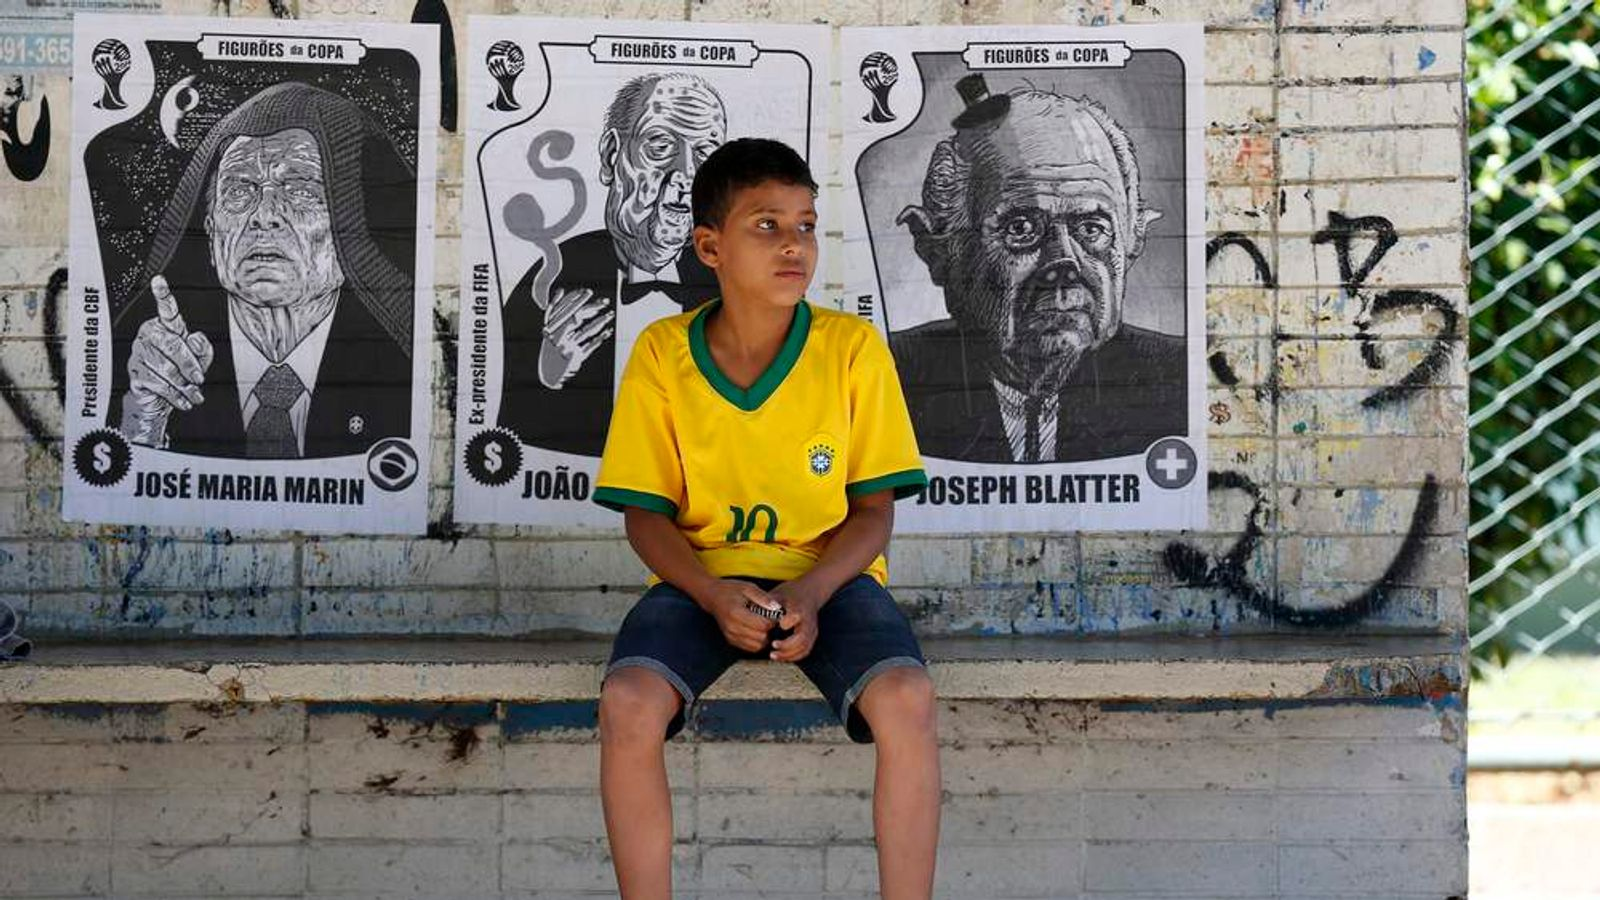 Sepp Blatter Poster In Brasilia With Brazil Fan